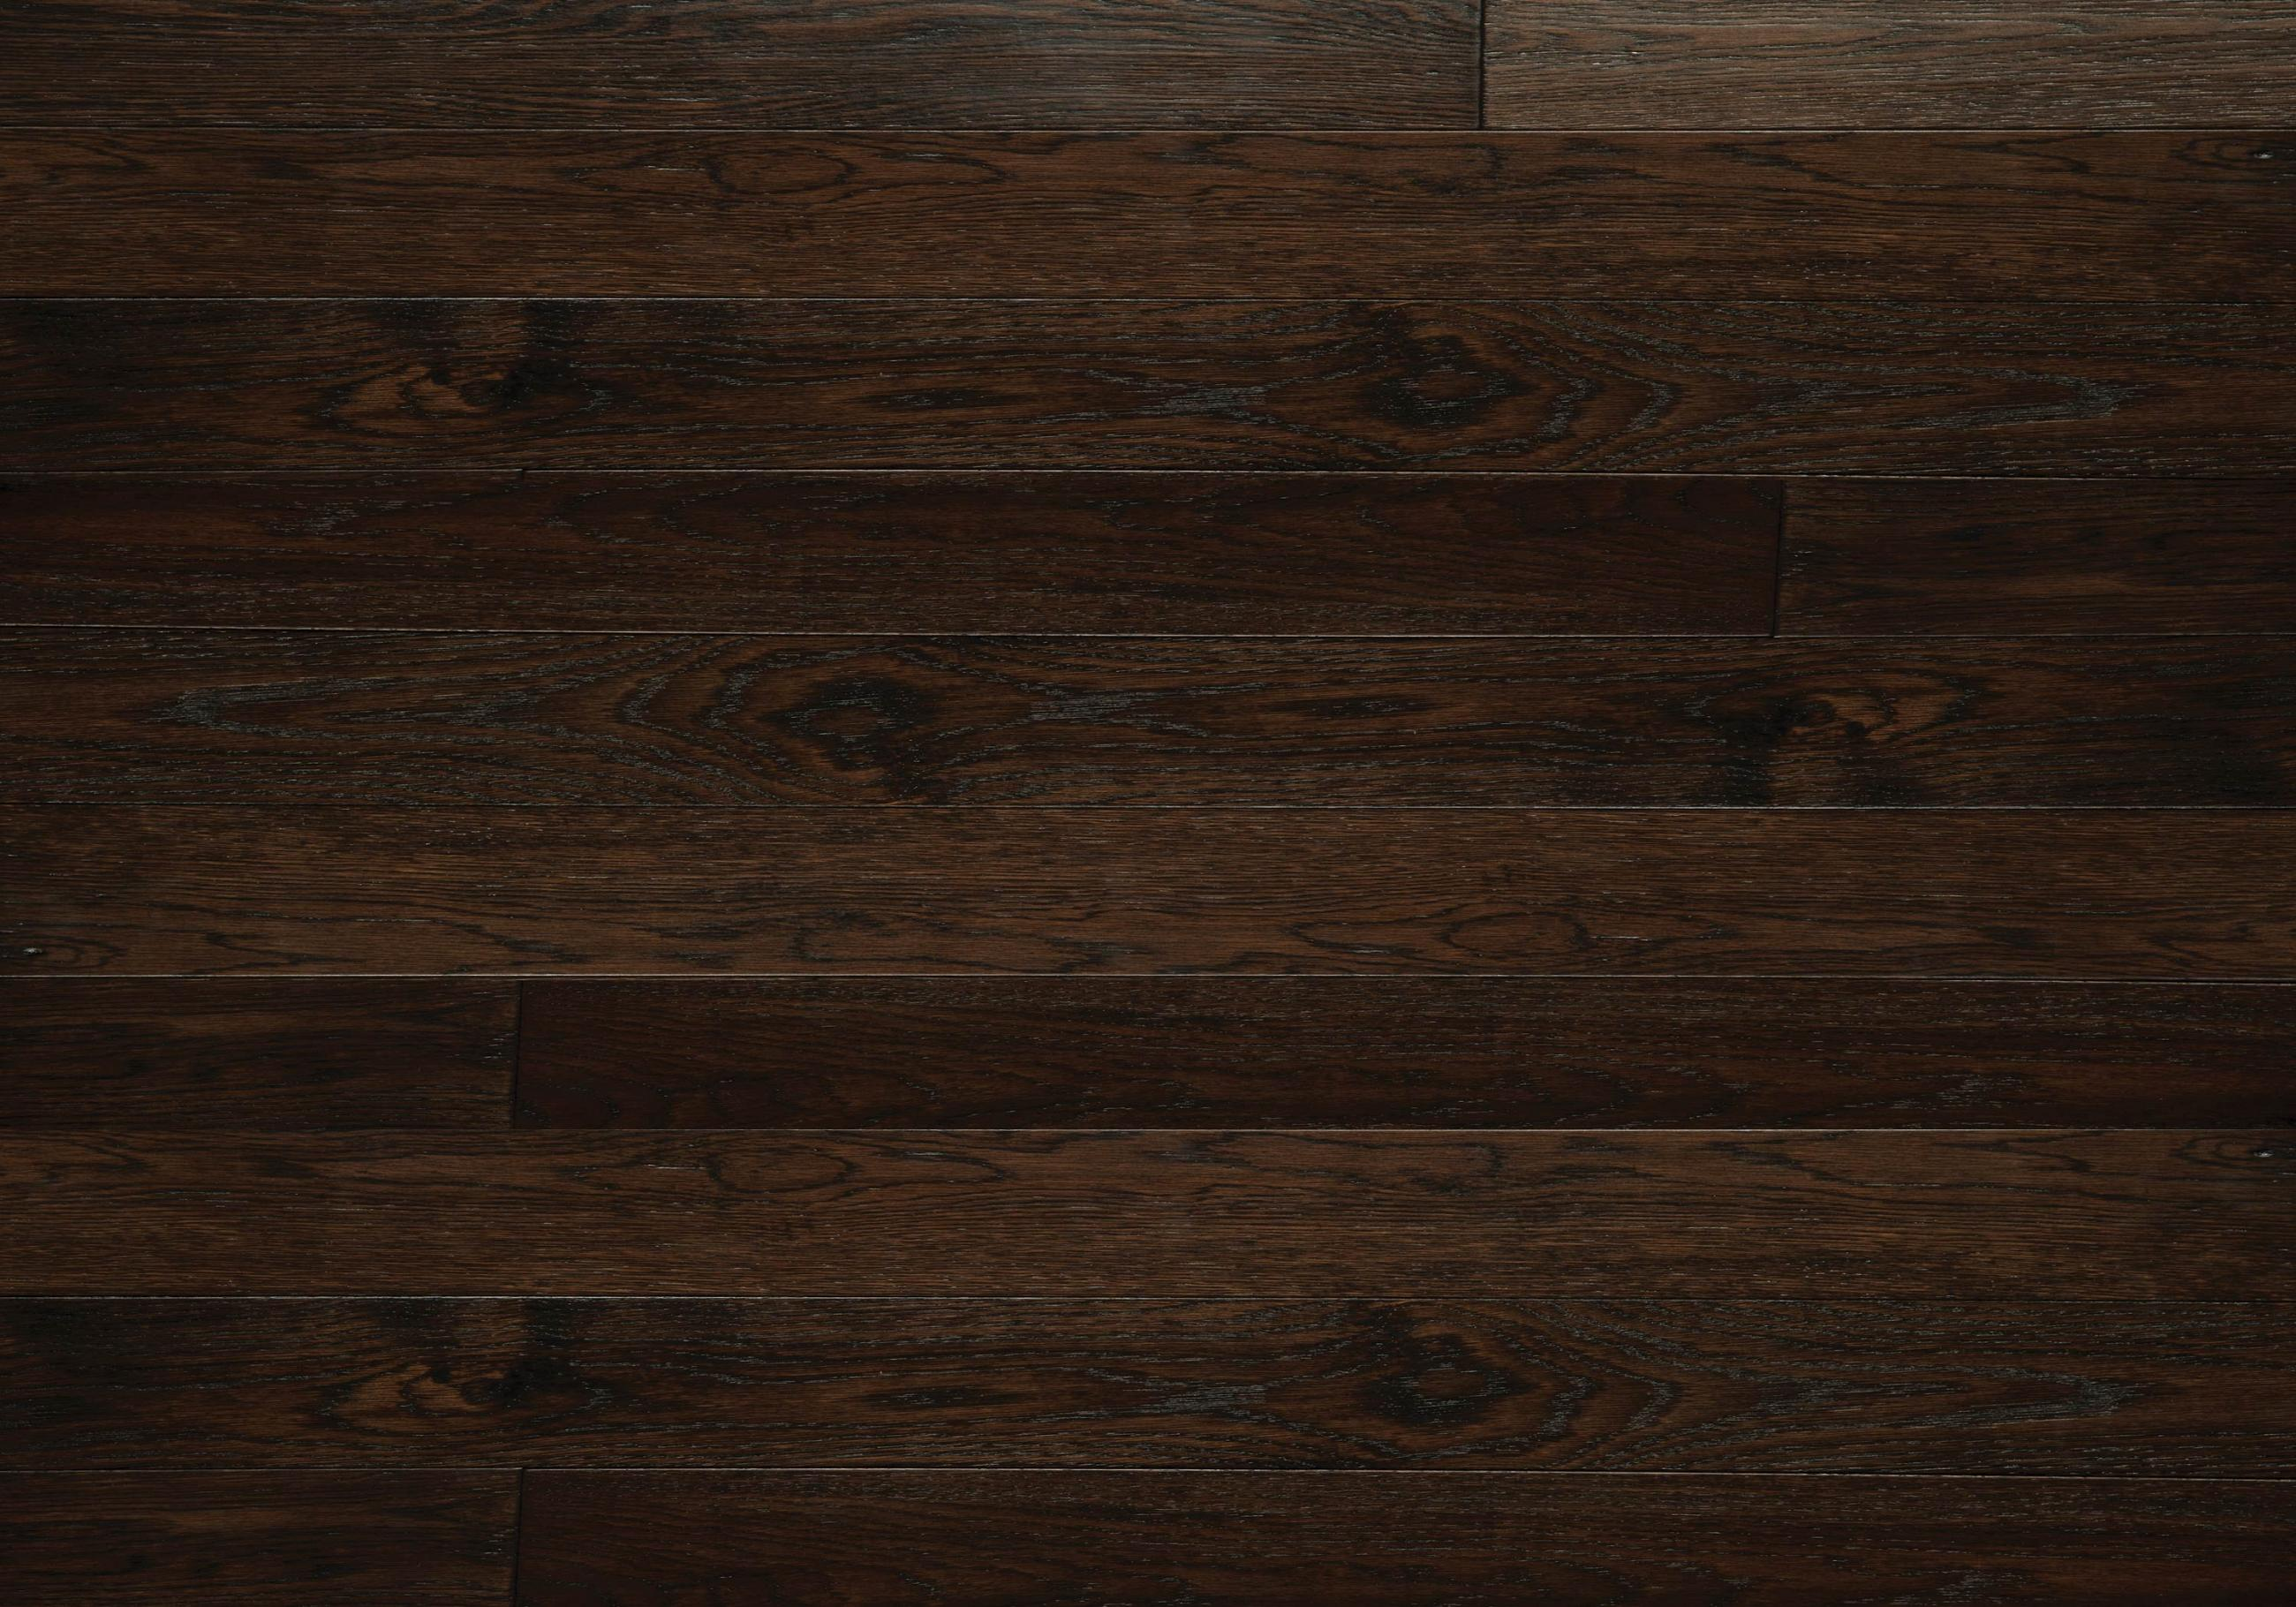 raw oak hardwood flooring - wood floors